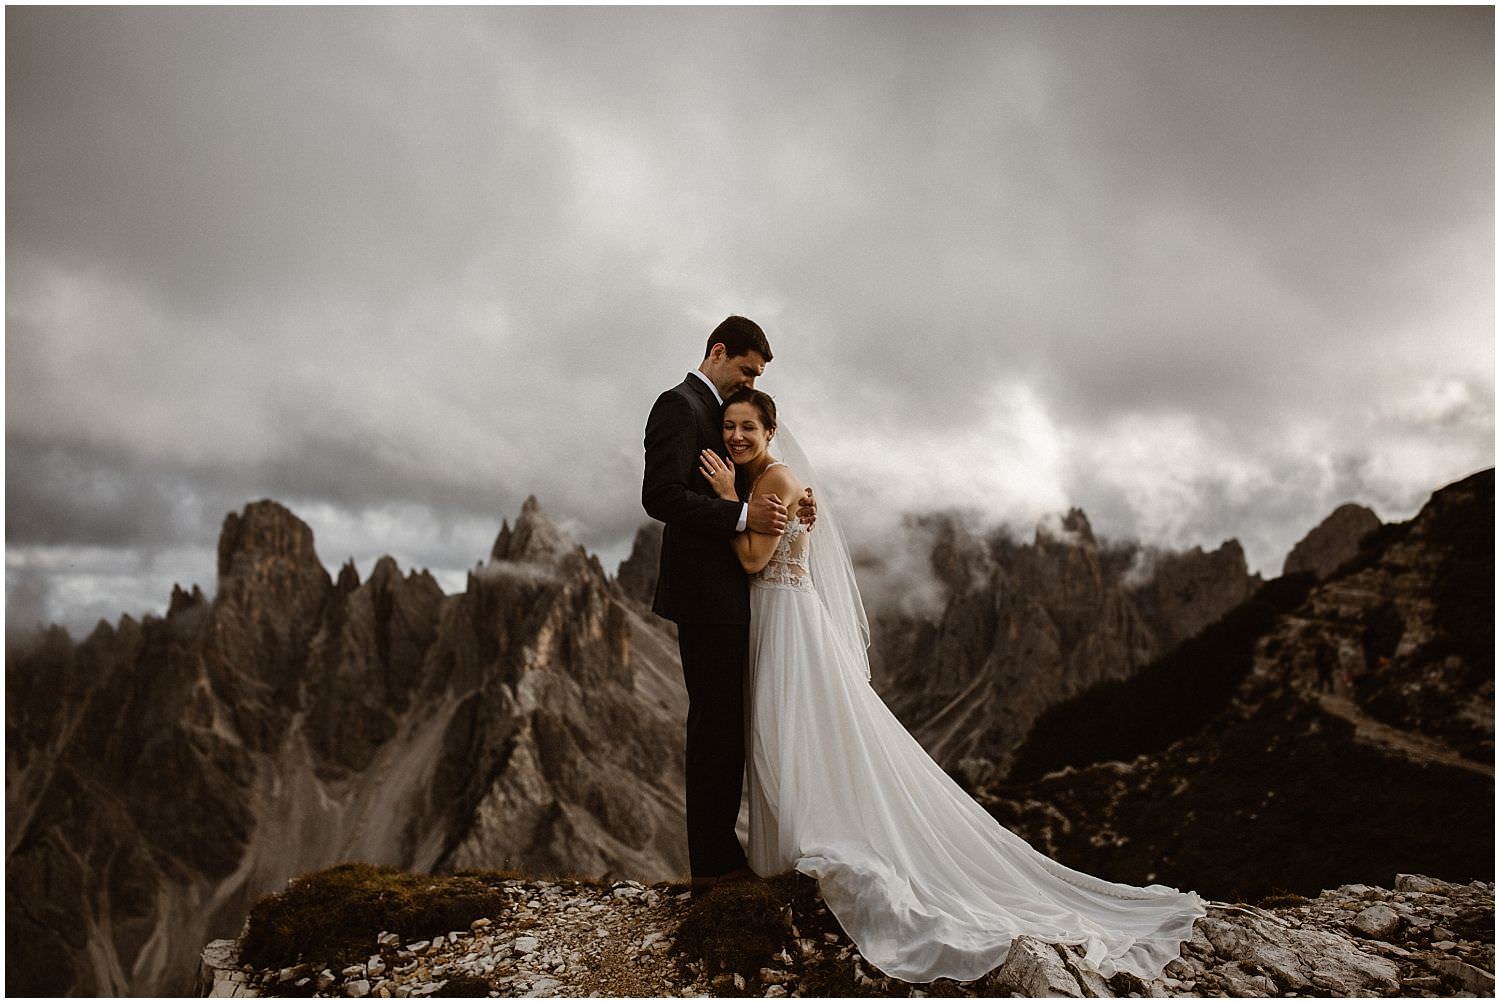 Wedding photographer Dolomites